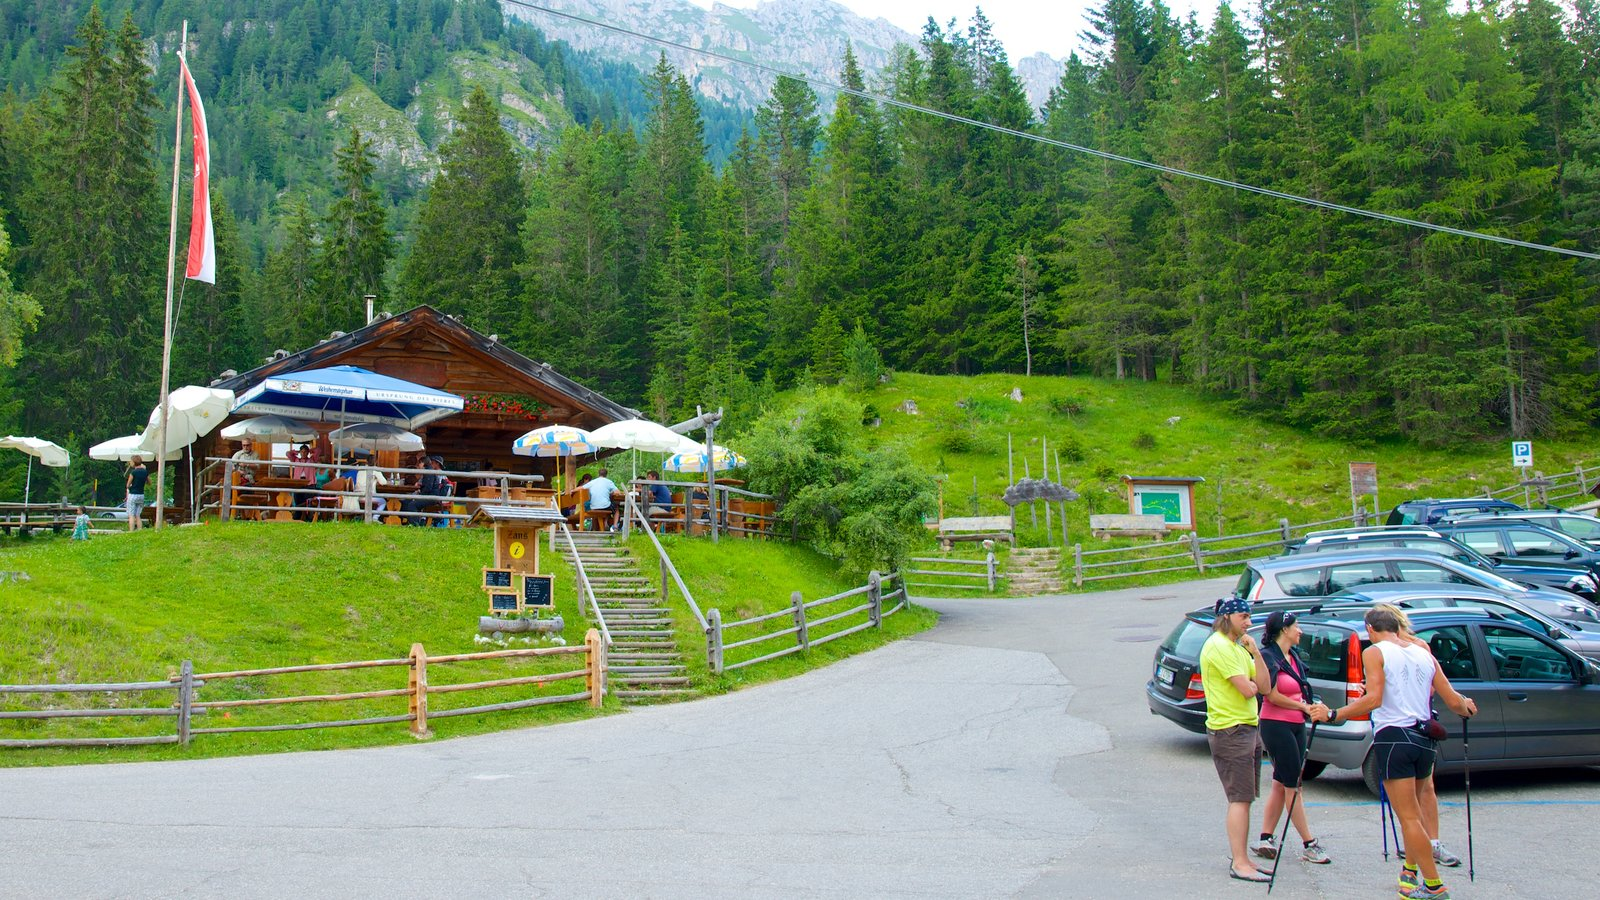 Funes which includes forests as well as a small group of people